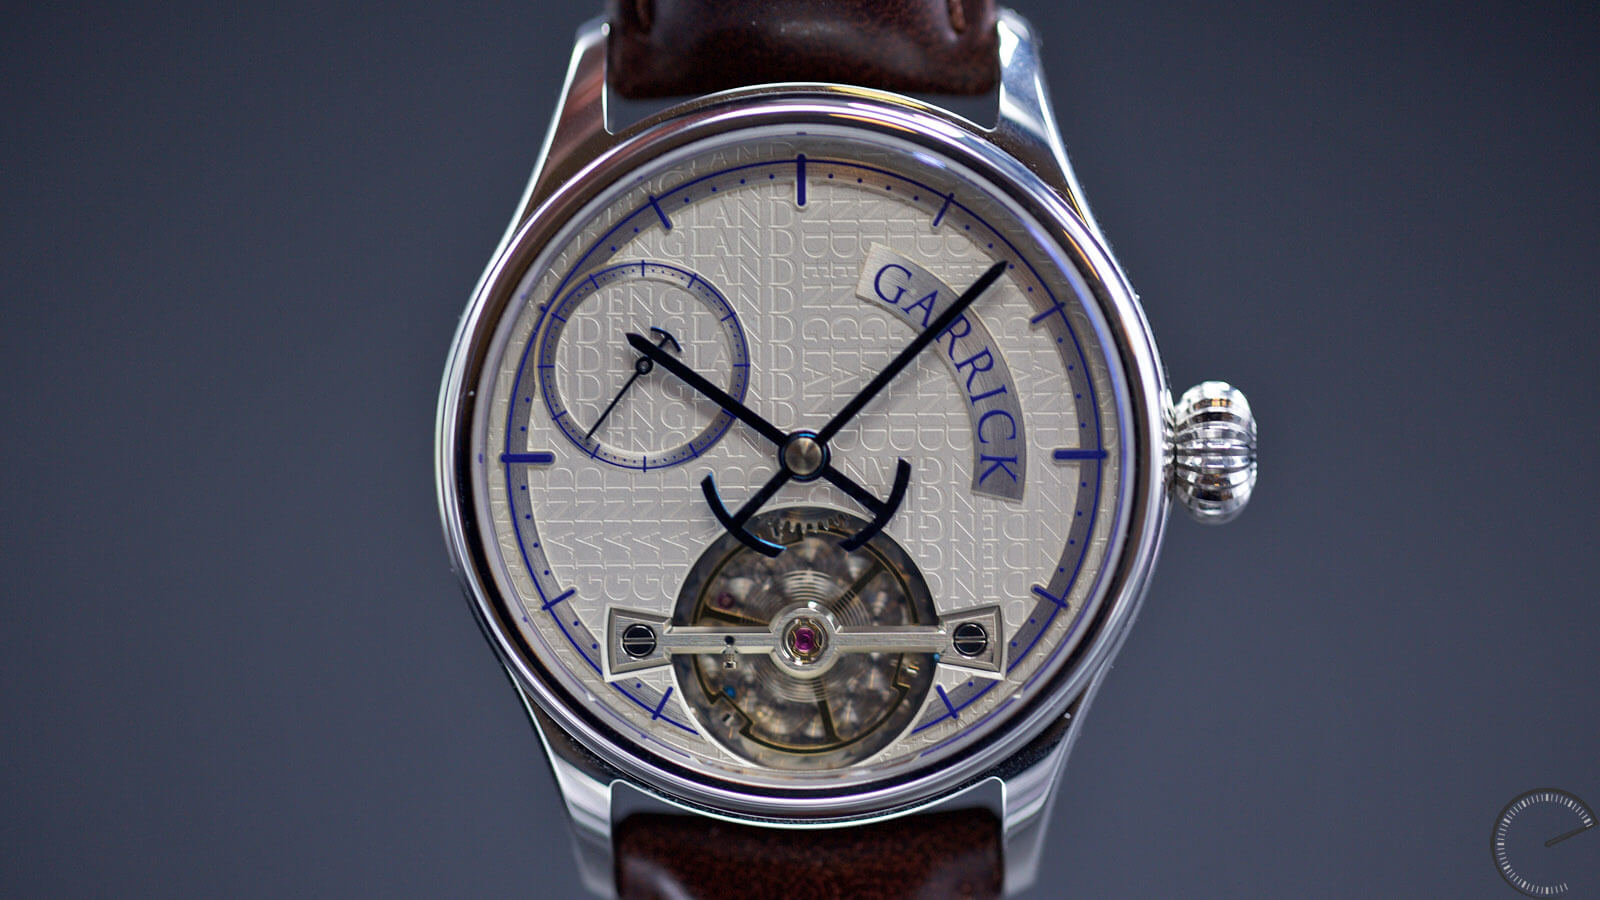 Image of Garrick Portsmouth - eaturing an exclusive hand-wound movement and, specifically, a prominent balance bridge